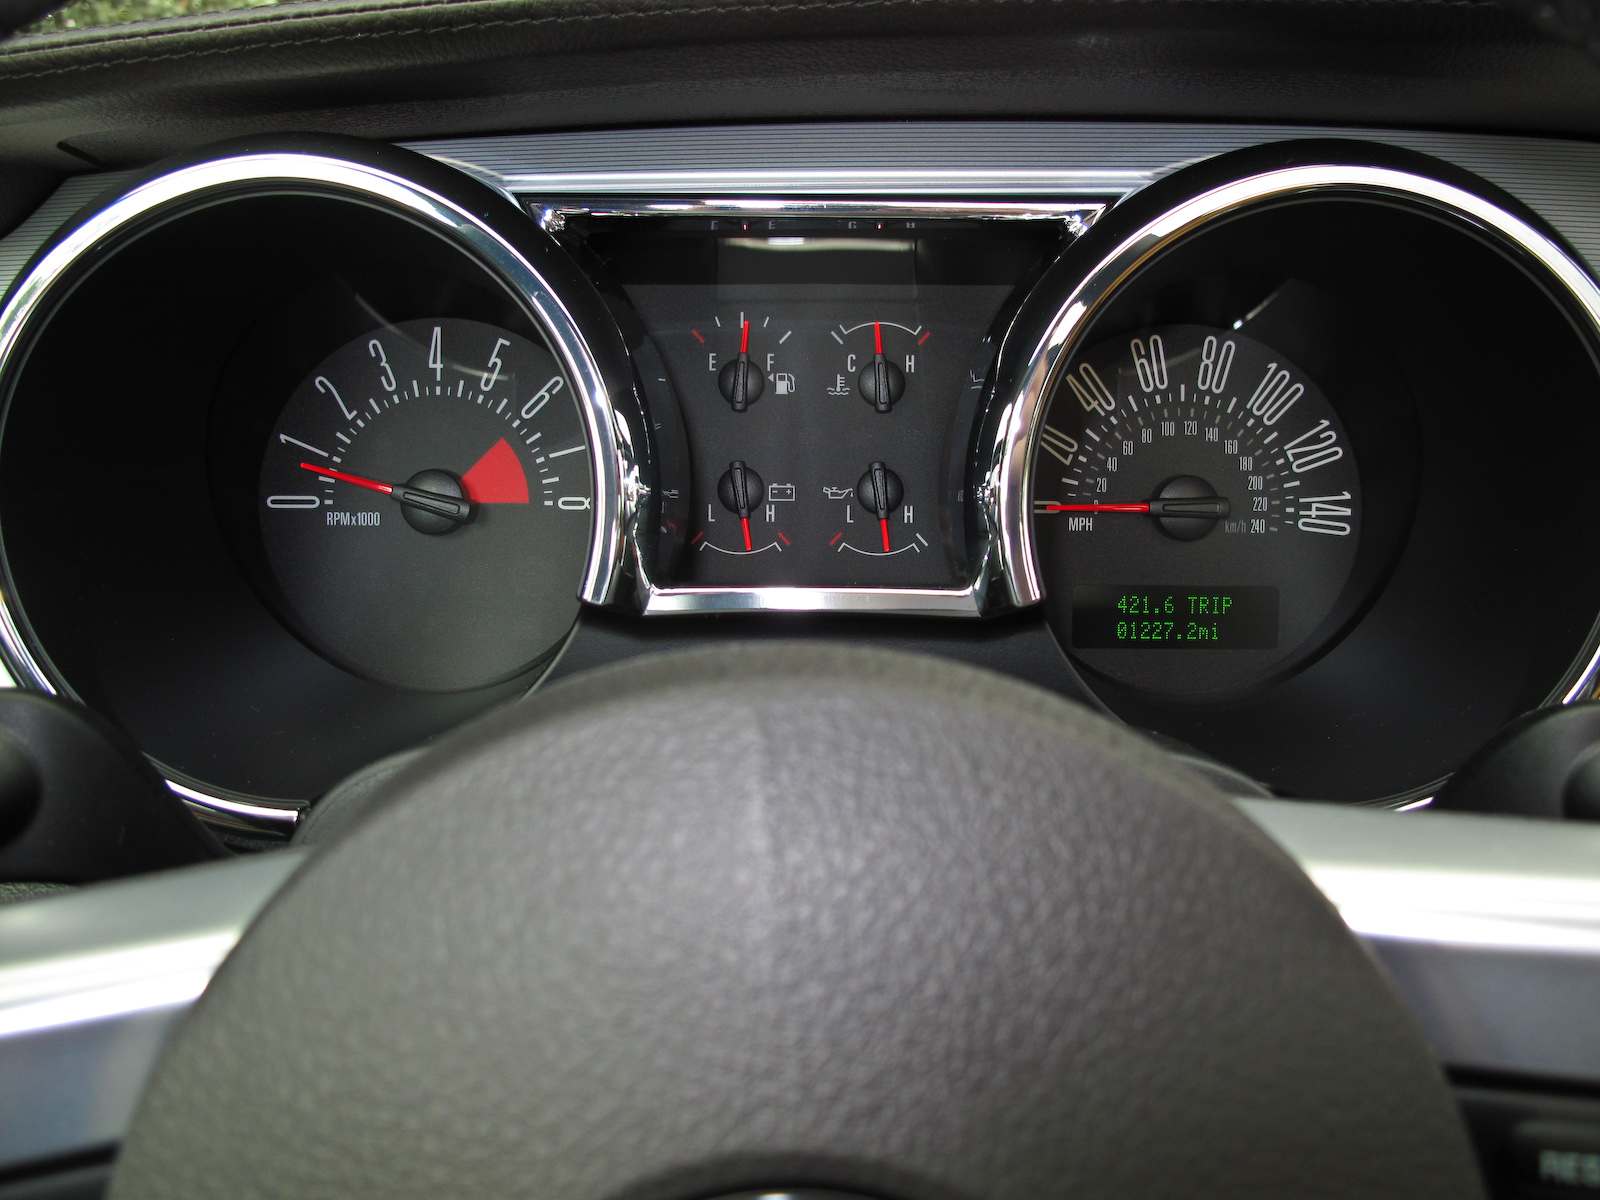 2009 Ford Mustang GT | Top Speed